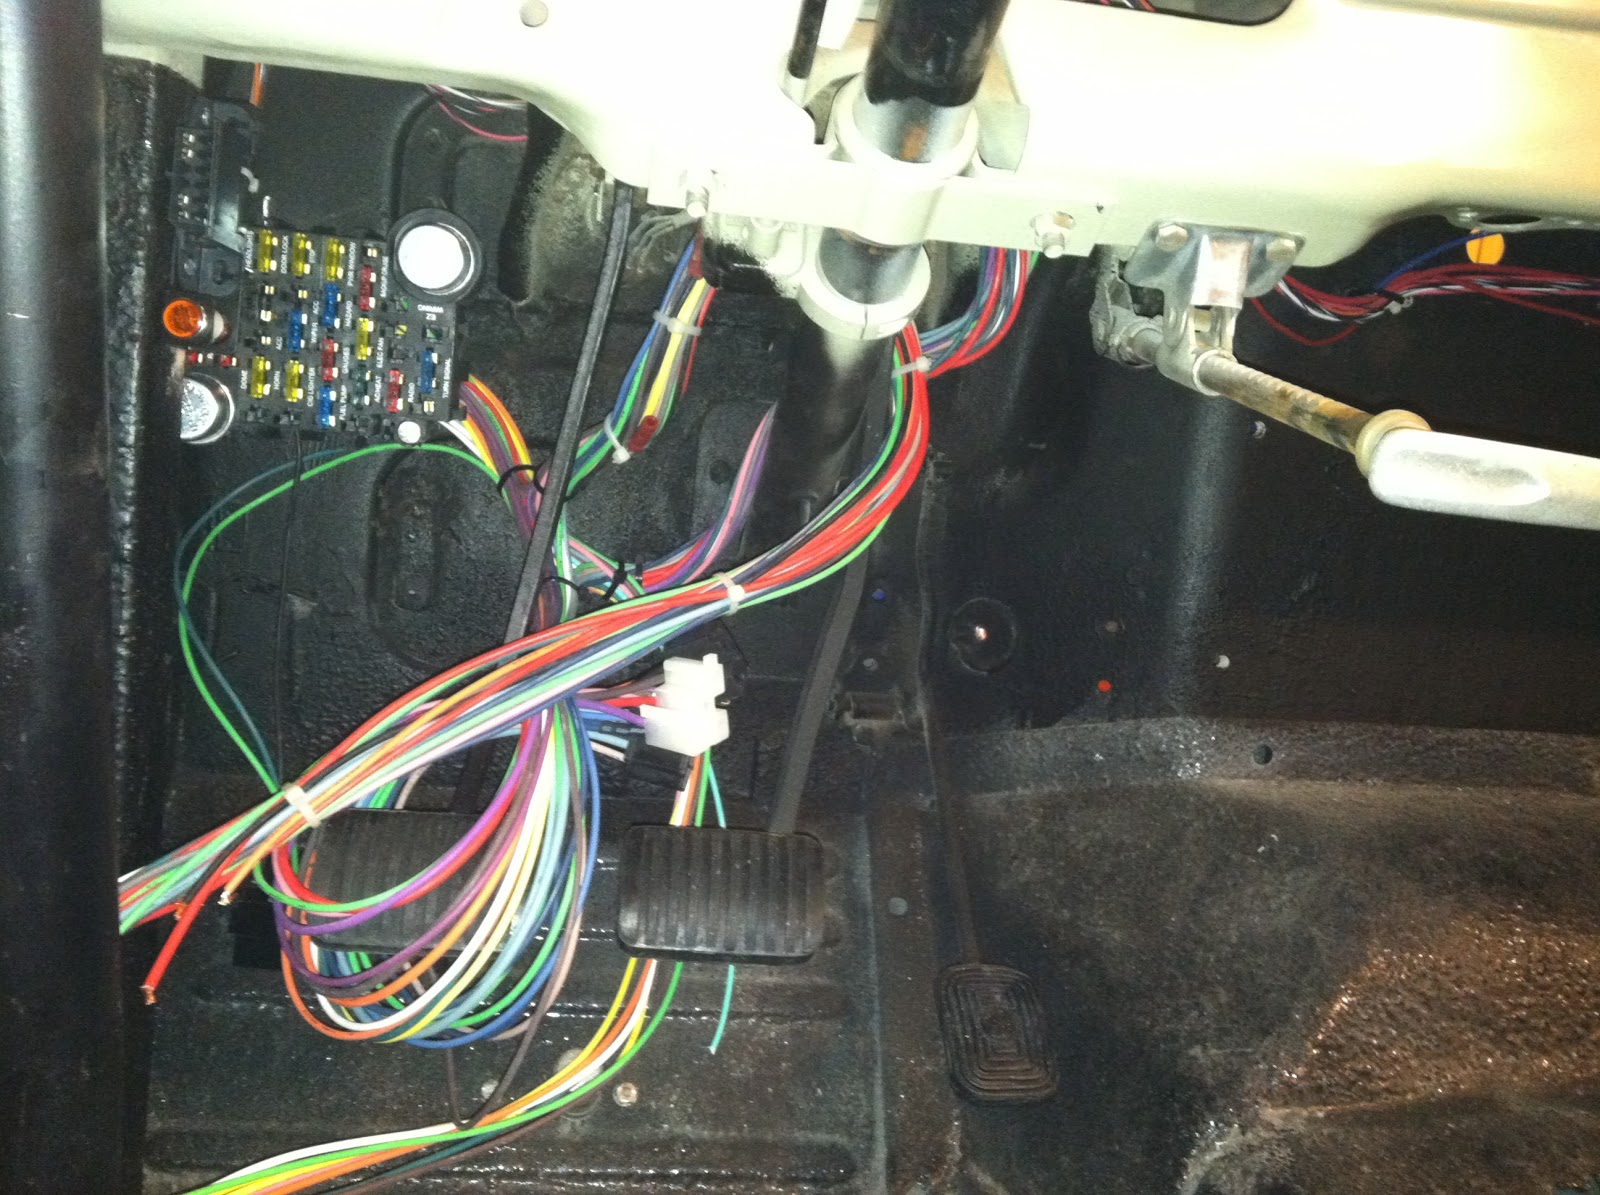 small resolution of ez wiring harness cj5 wiring diagram go ez wiring harness cj5 ez wiring harness cj5 source ez wiring harness jeep